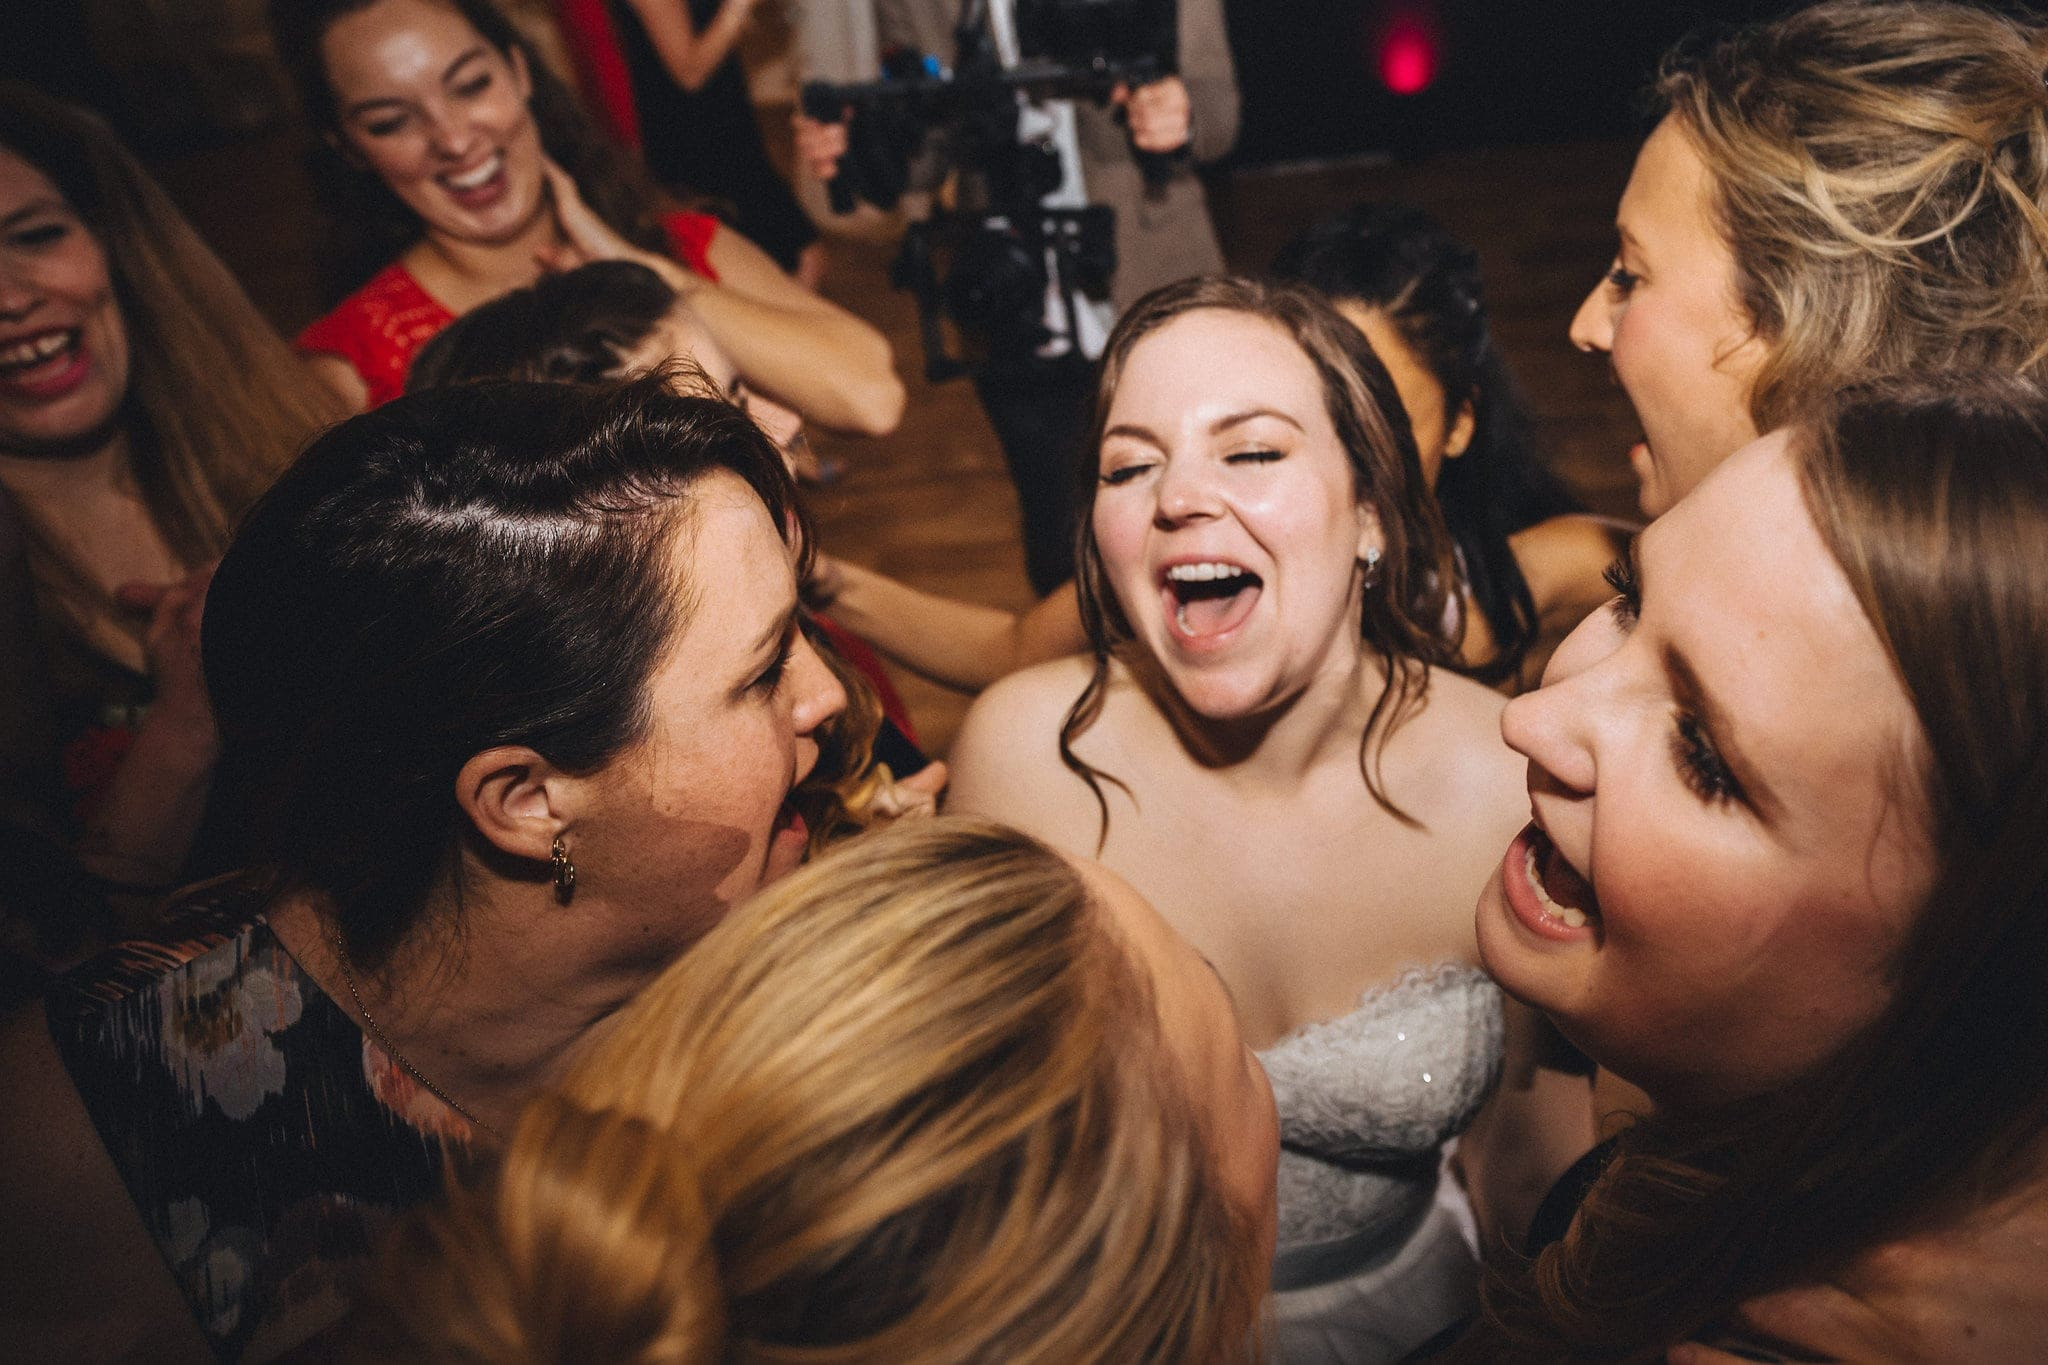 Bride sings with her friends on dancefloor